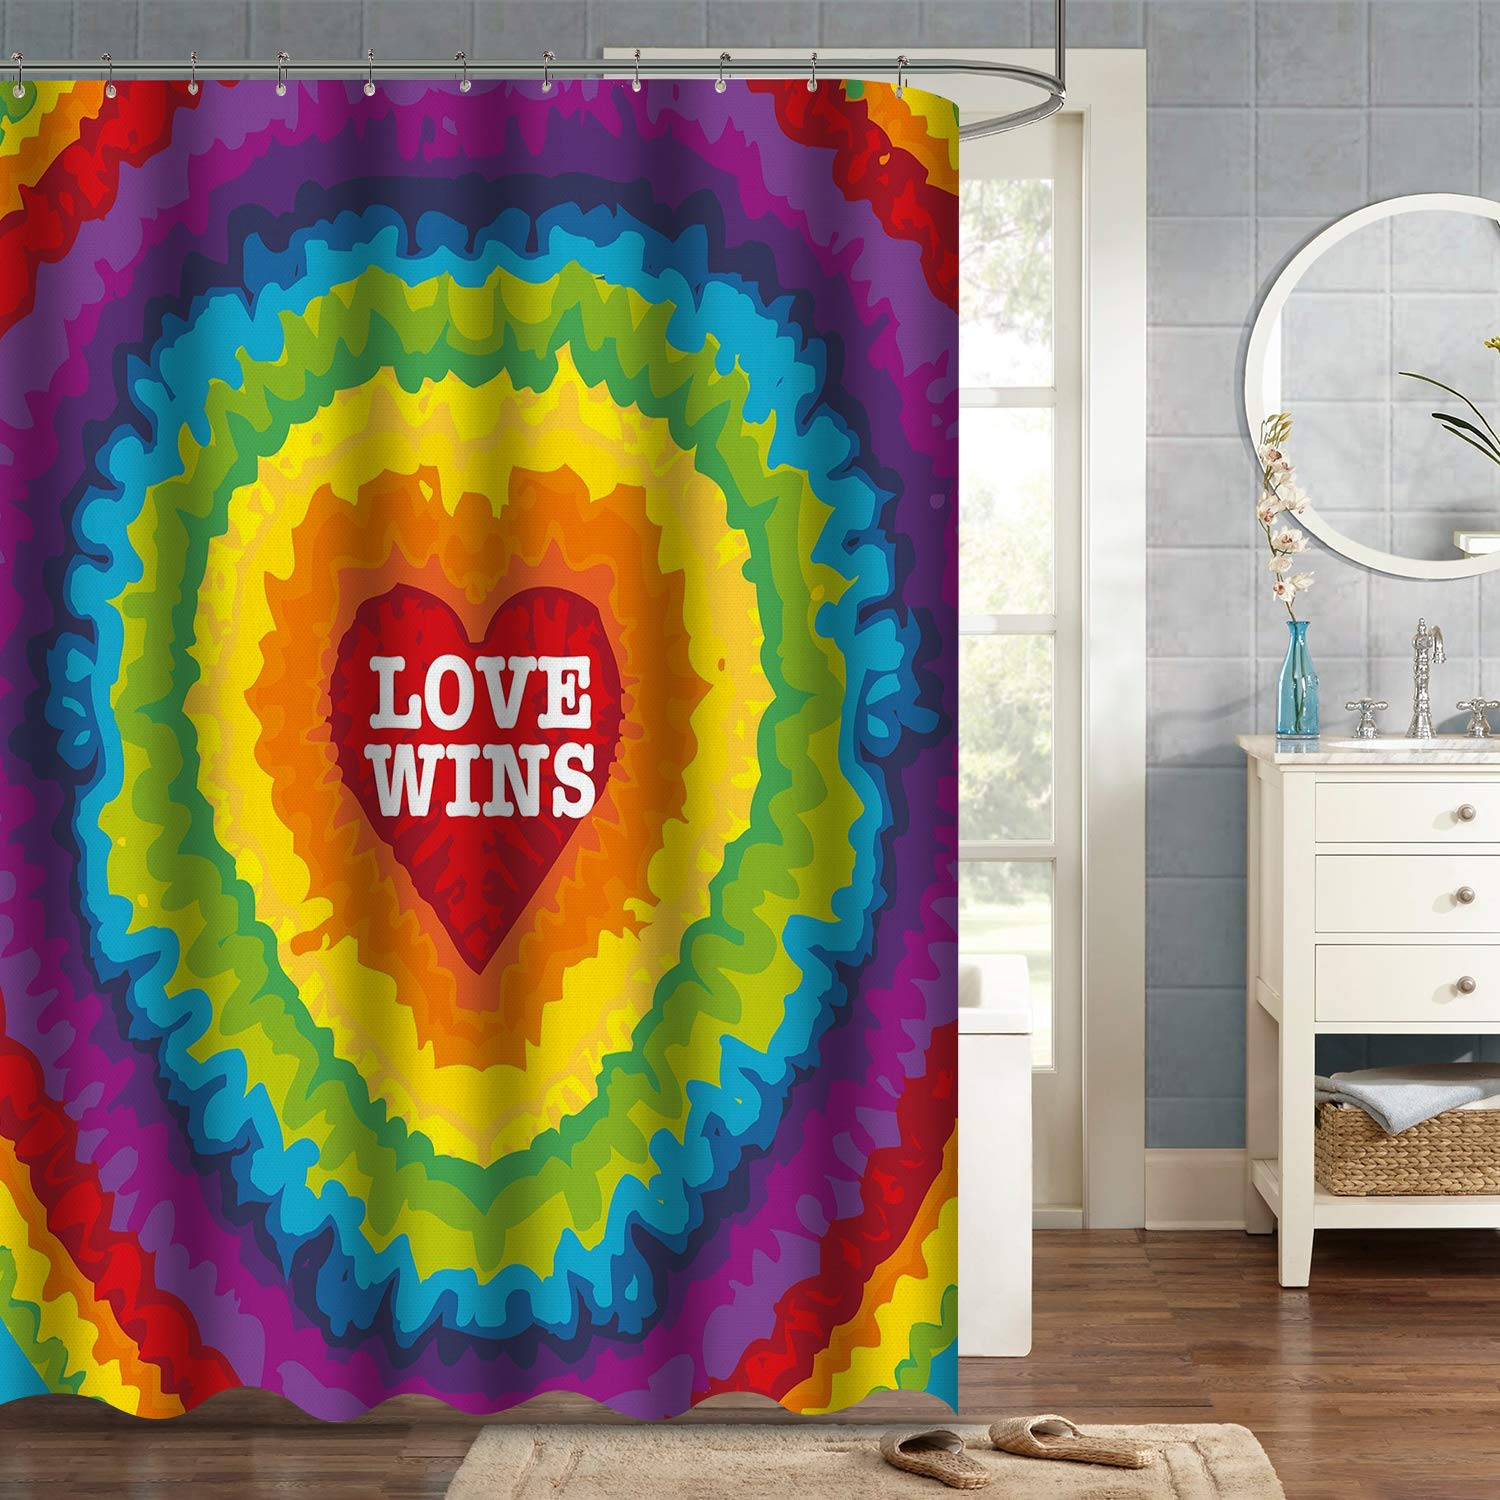 """VVA Tie Dye Love Wins Fabric Shower Curtain, Groovy Vintage Style Heart with Rainbow Colors, Valentines Pride, Cloth Bathroom Decor Set with Hooks, 72"""" Long, Colorful Yellow Orange Purple Red Blue"""